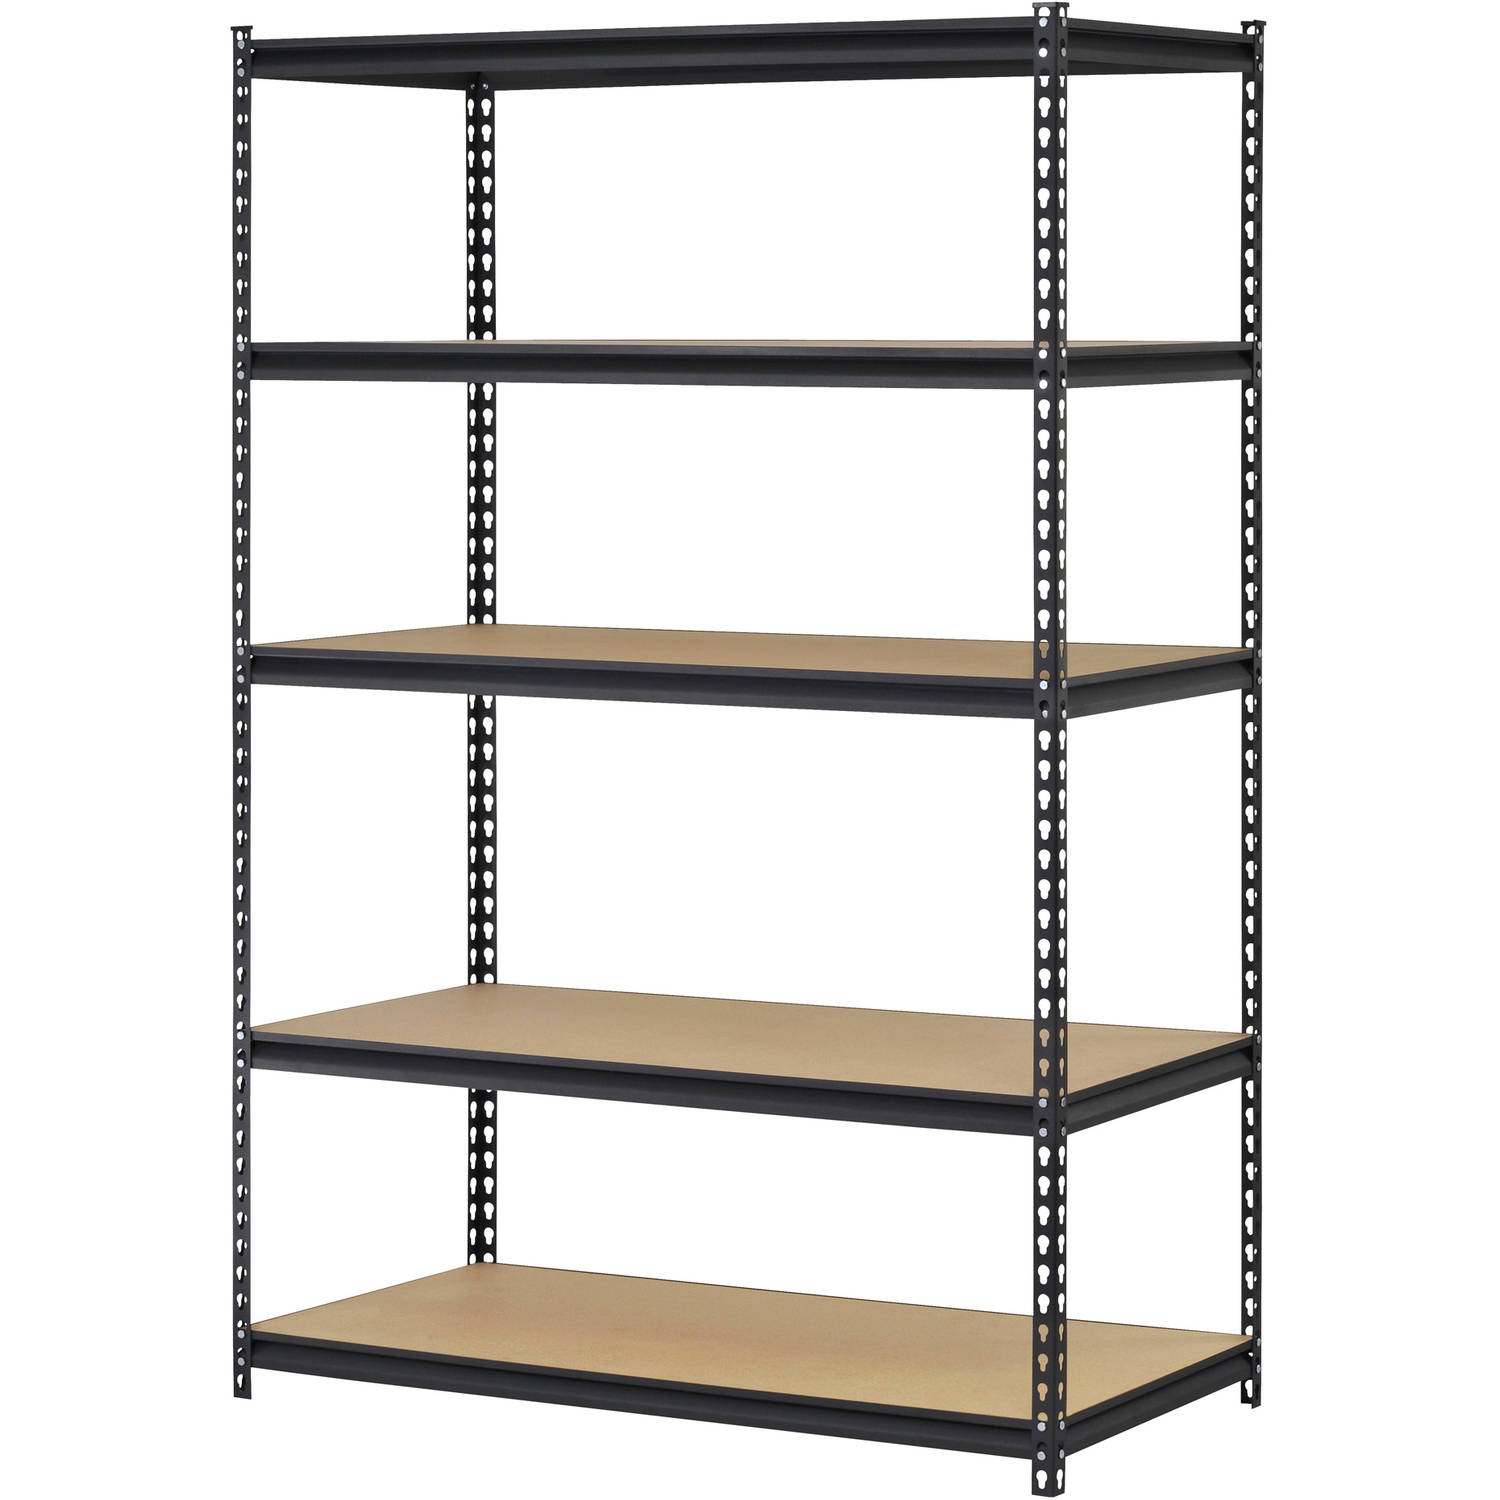 Muscle Rack 48″W x 18″D x 72″H 5-Shelf Ultra Rack with 4000 lb Capacity